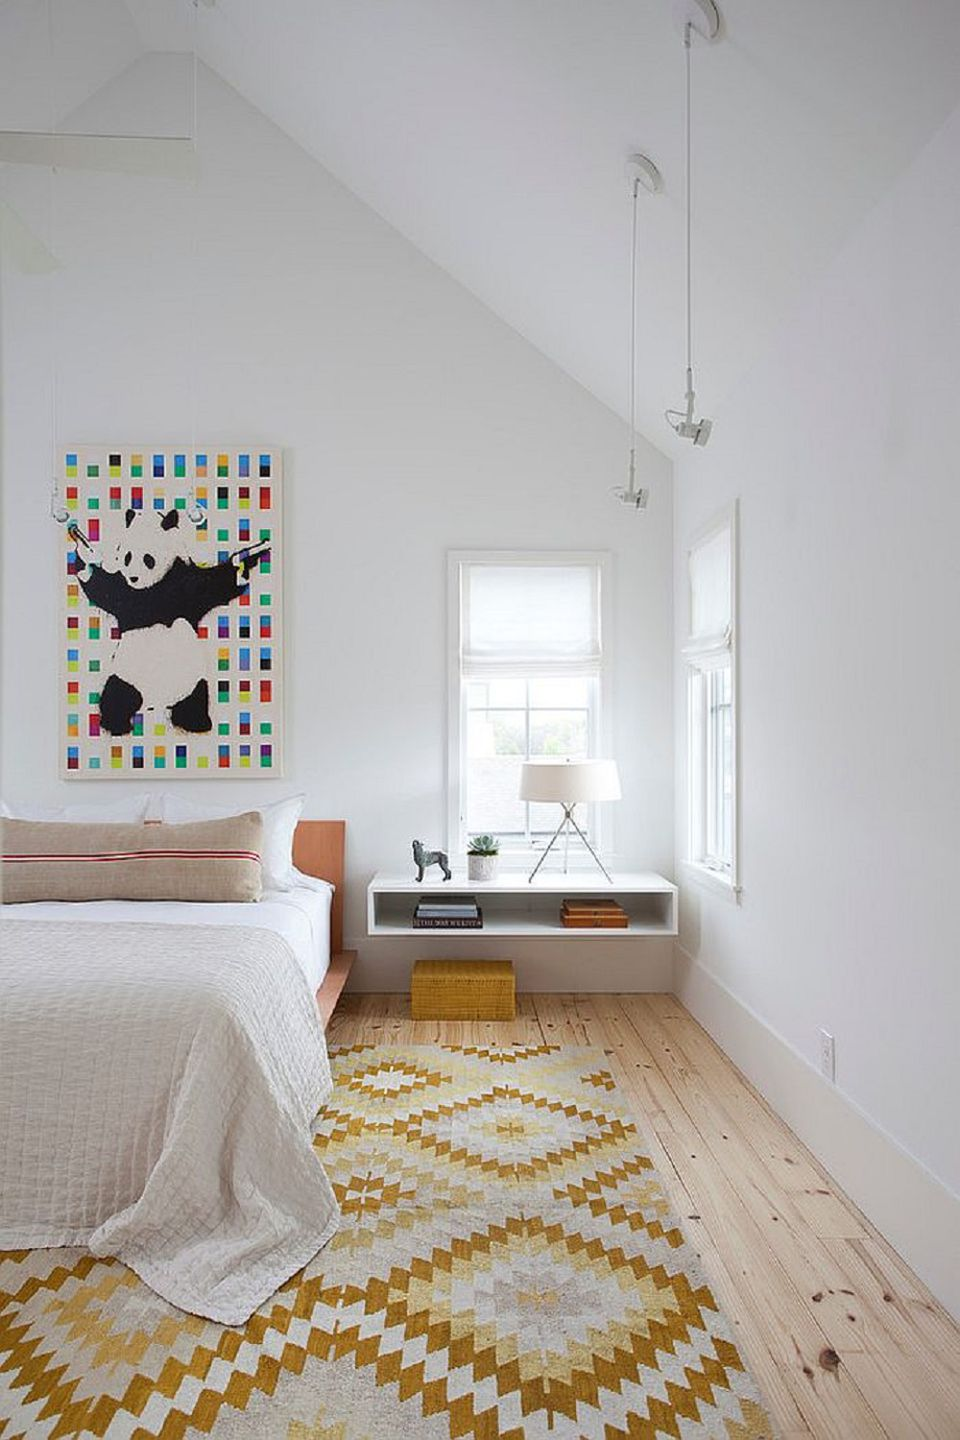 Scandi bedroom with colorful artwork